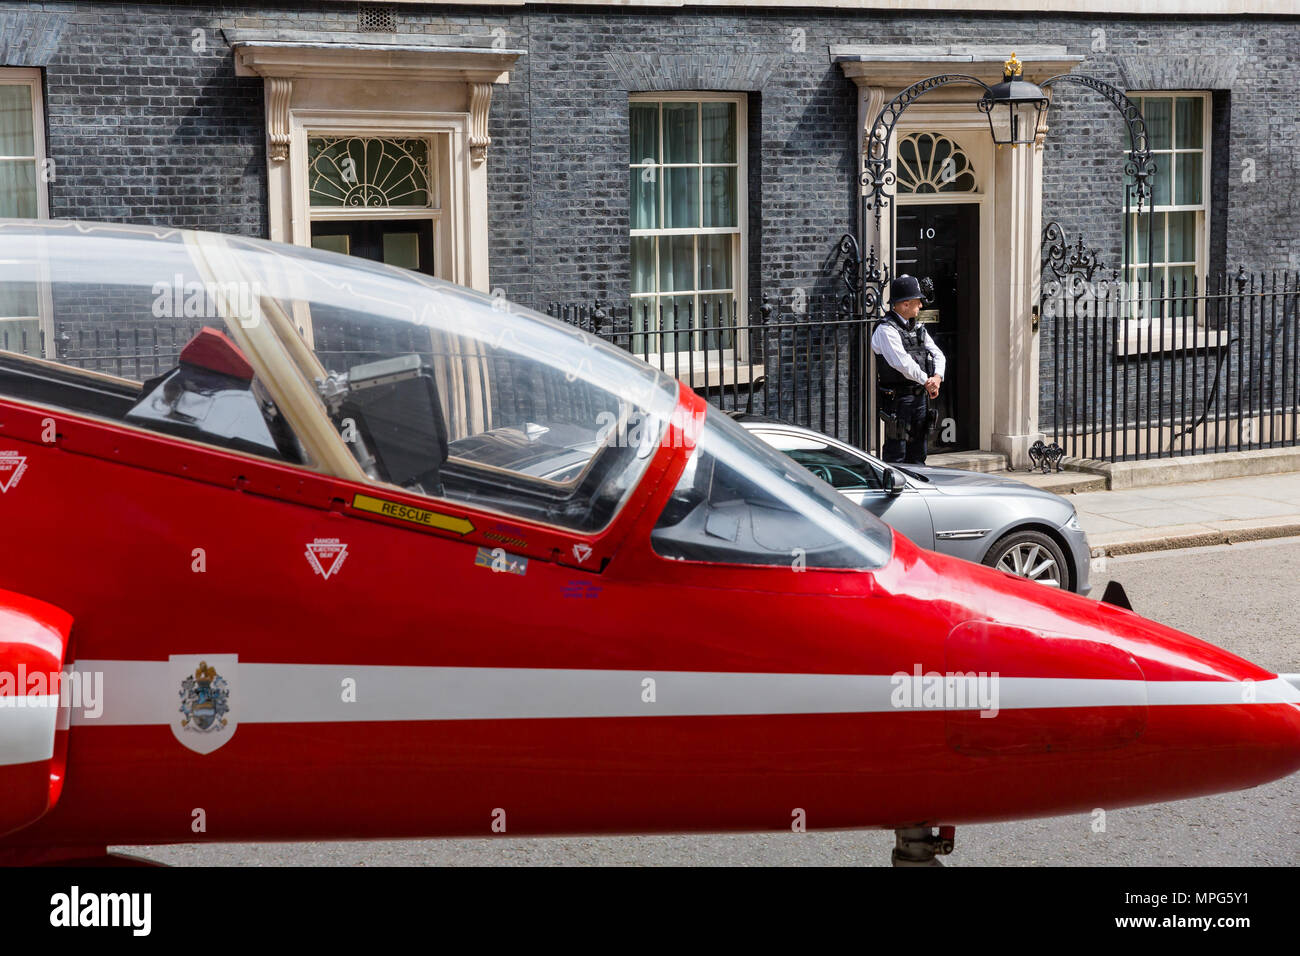 Downing Street, London, UK. 23rd May, 2018. A Red Arrow jet parked outside Number 10 Downing St, London, UK, to mark 100 years of the RAF (Royal Air Force) MUST CREDIT: Chris Aubrey/Alamy Live News Stock Photo